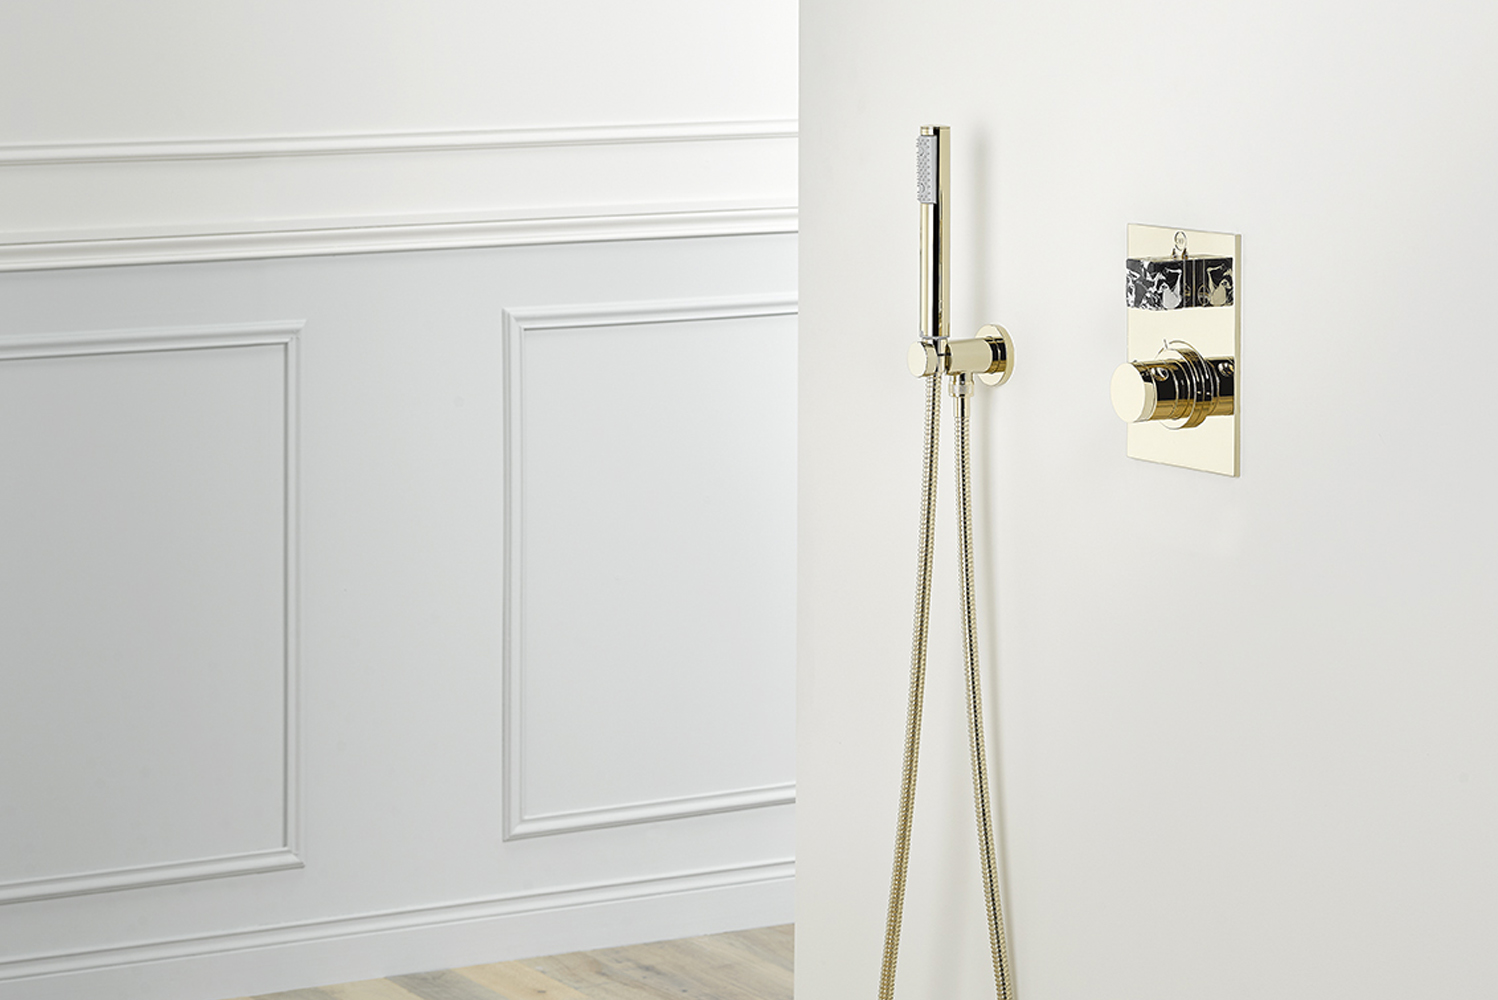 Like all THG Paris products, the collection is offered with cross or lever handles and in various configurations for basins, matching bathtub and shower systems and a range of matching accessories.